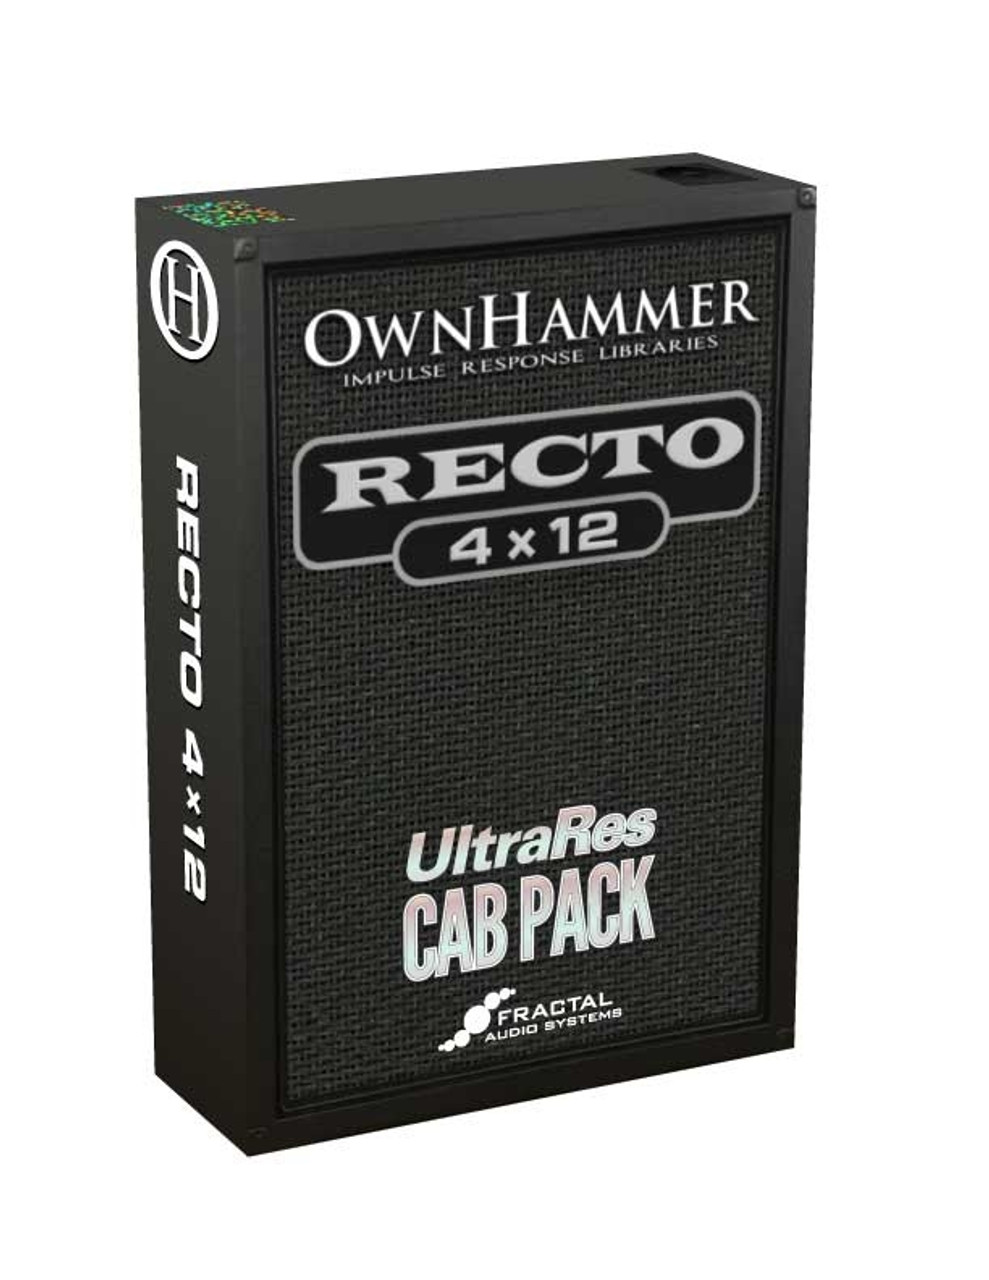 Cab Pack - OwnHammer 412 Recto